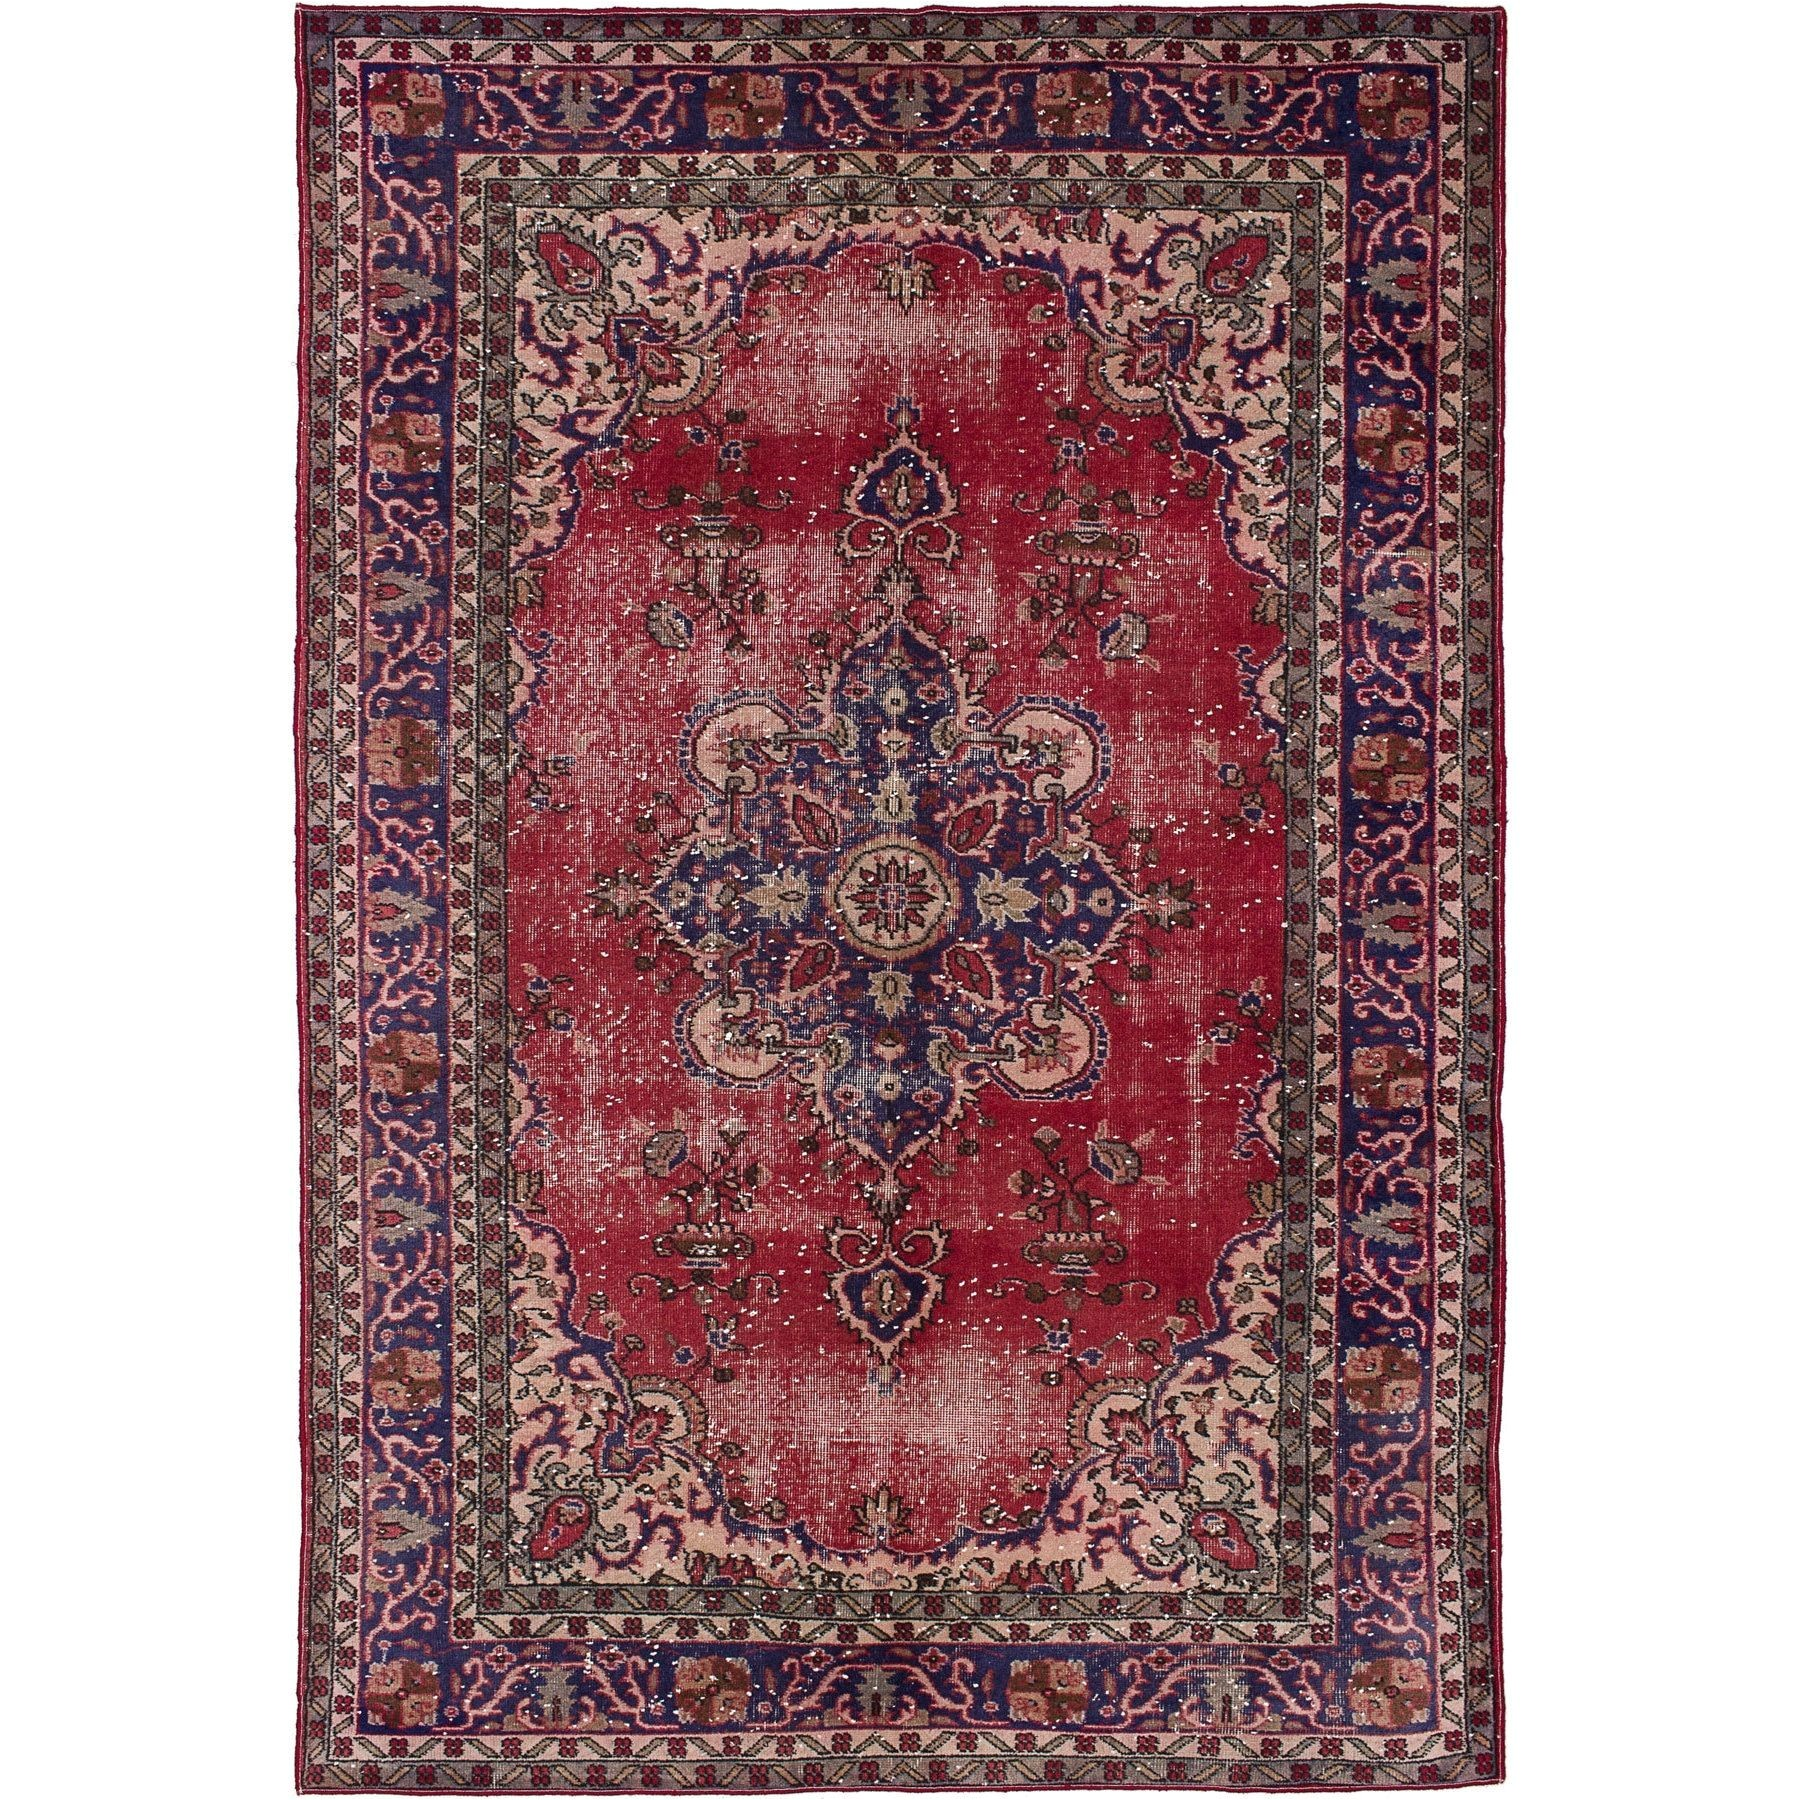 ecarpetgallery hand knotted melis vintage red wool rug 6 3 x 9 5 red rug 6 x 9 size 6 x 9 cotton oriental